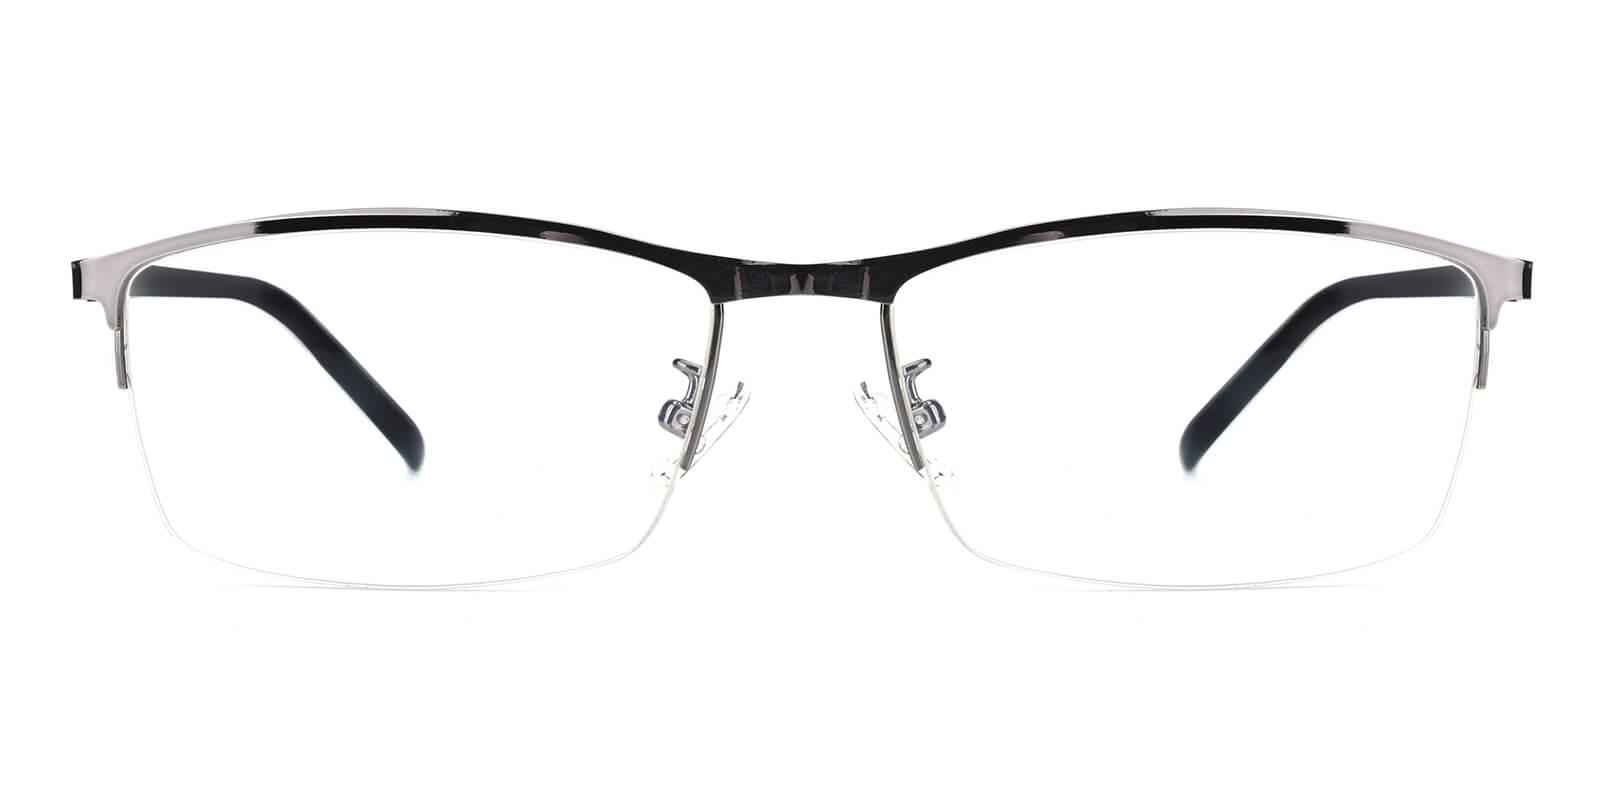 Elegant-Gun-Rectangle-Metal-Eyeglasses-additional2